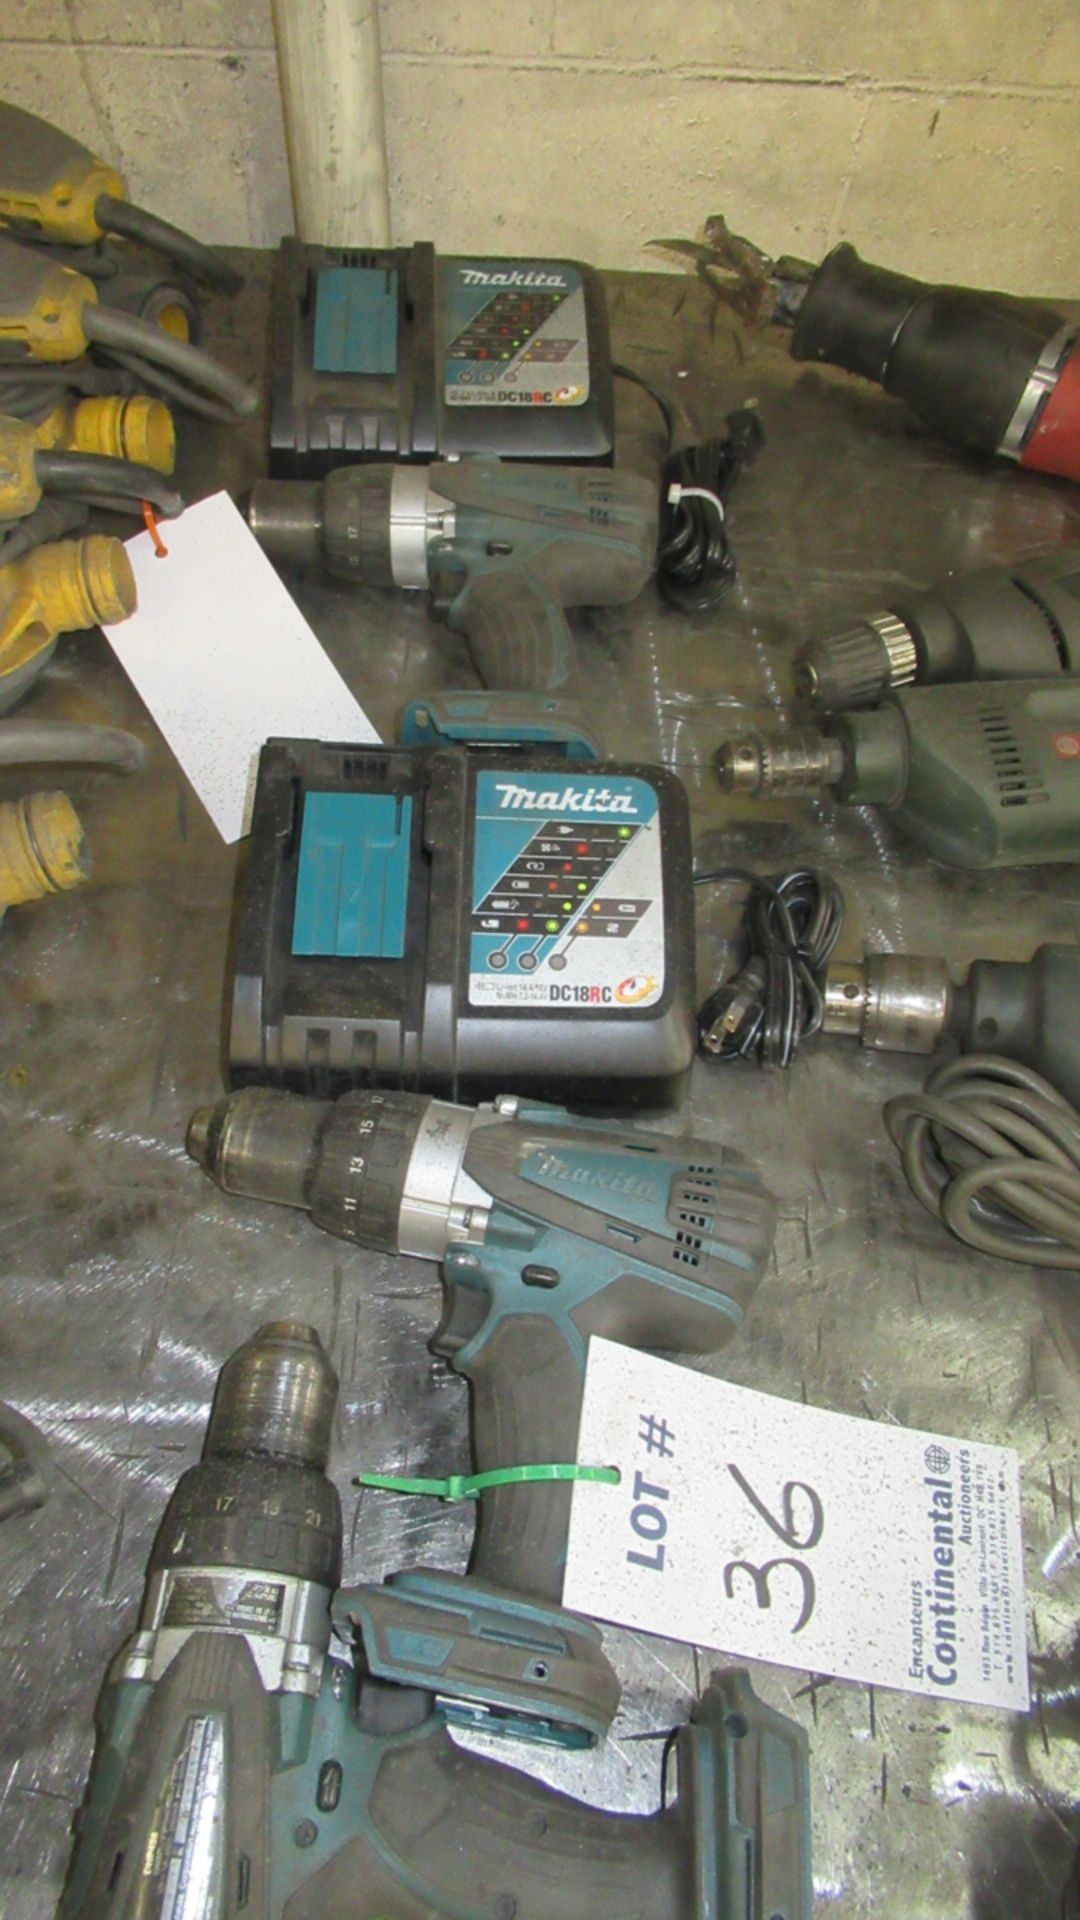 Lot 36 - LOT OF 3 MAKITA BATTERY DRILLS W/ CHARGERS